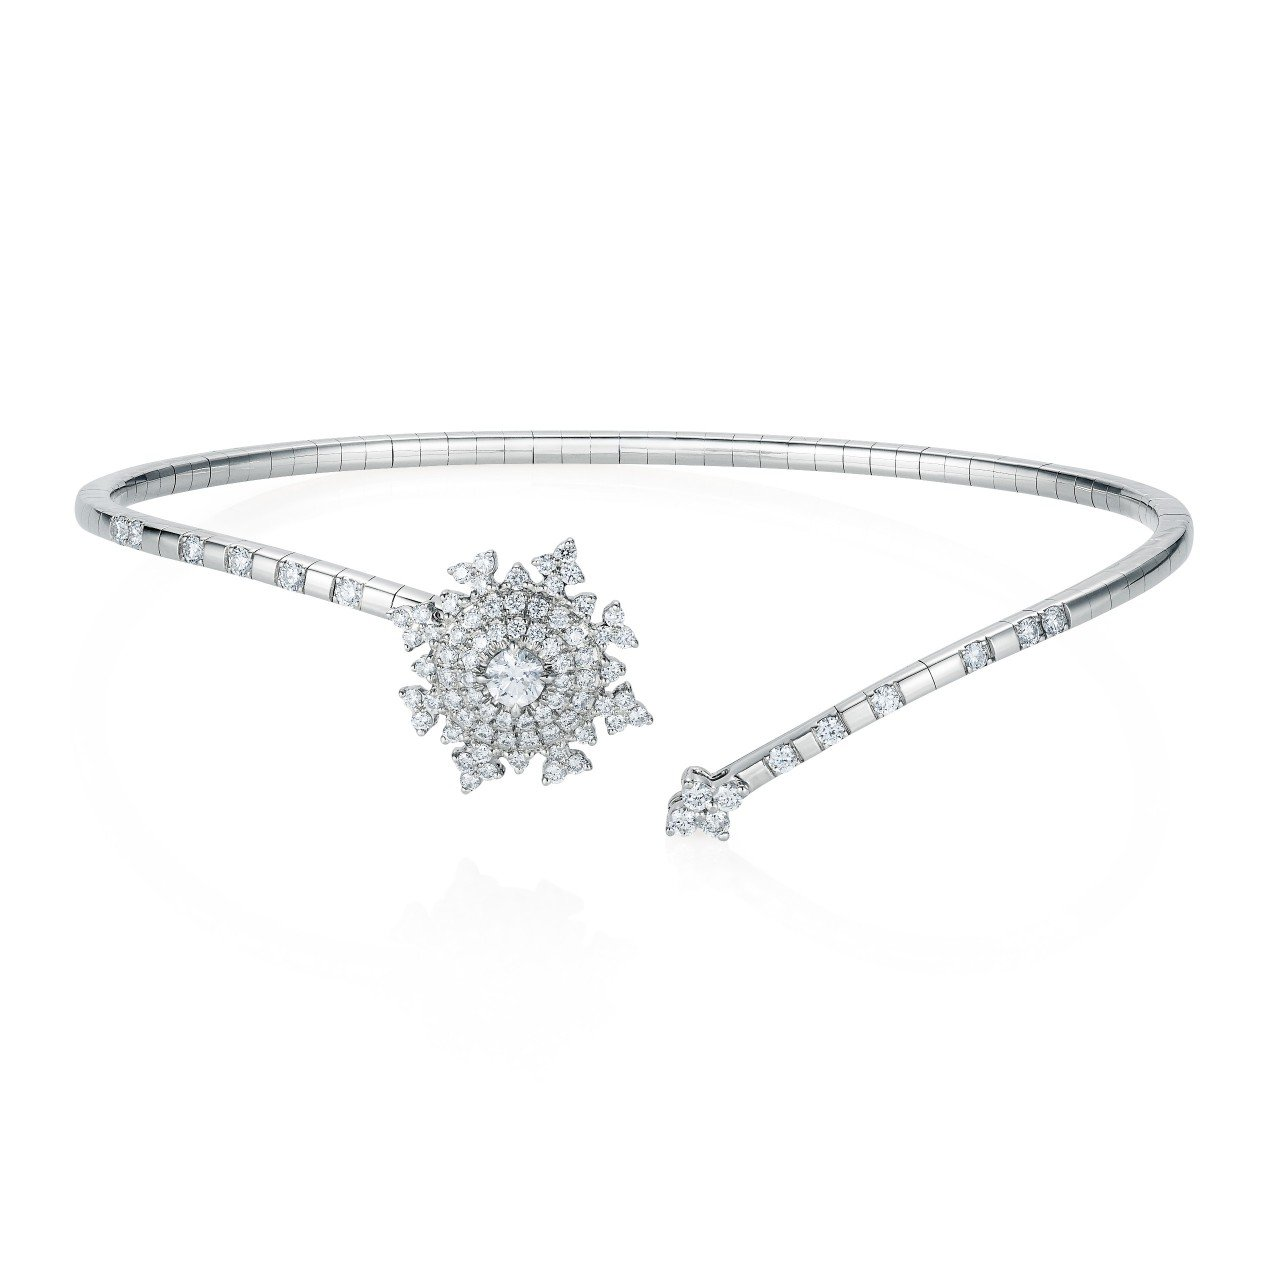 Petite Tsarina White Bracelet by Nadine Aysoy on curated-crowd.com